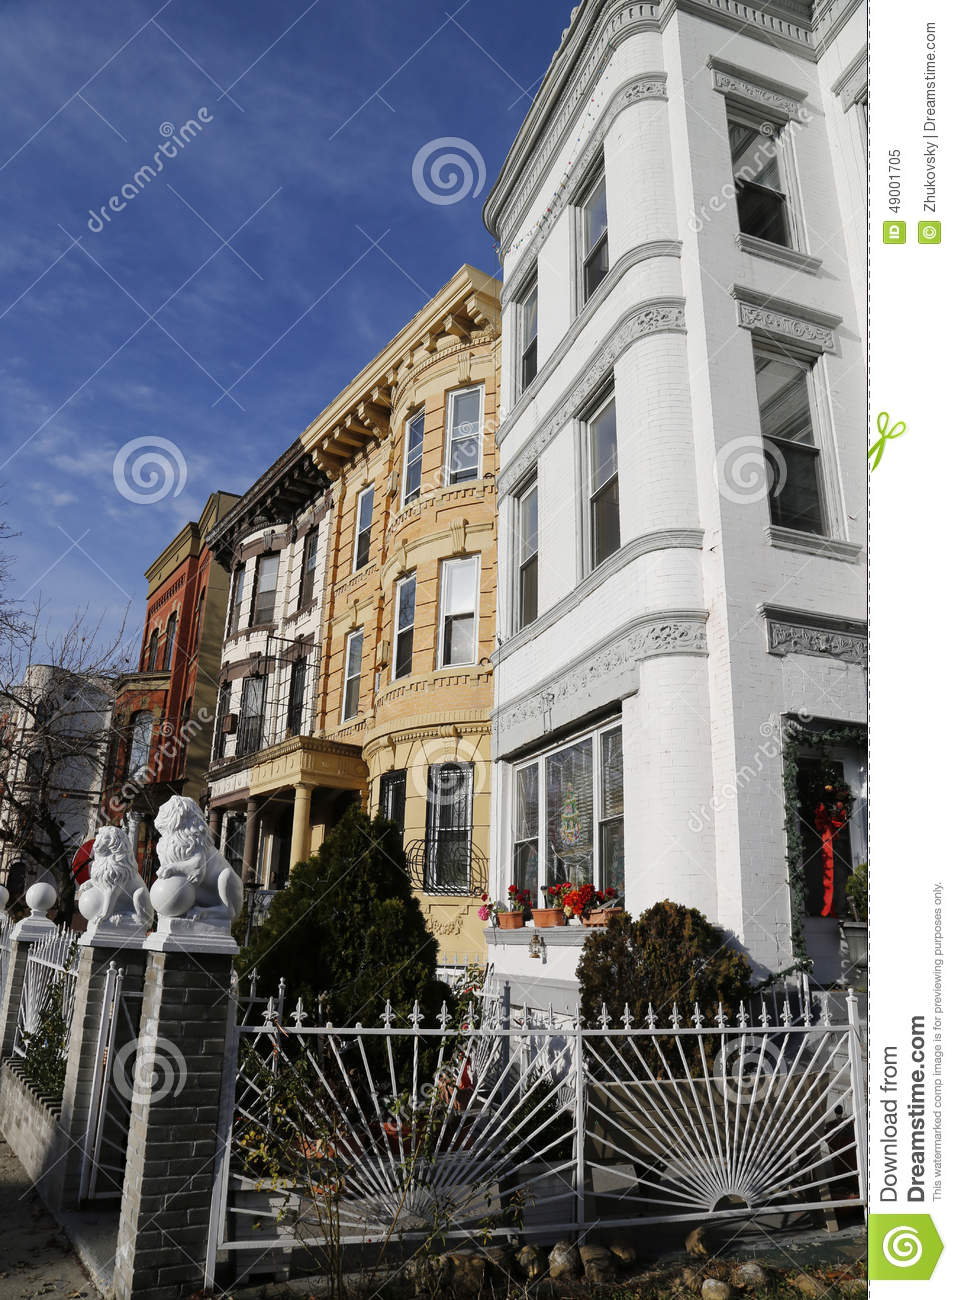 Maisons de gr s de new york city en voisinage de bedford stuyvesant brookly - Achat maison new york ...